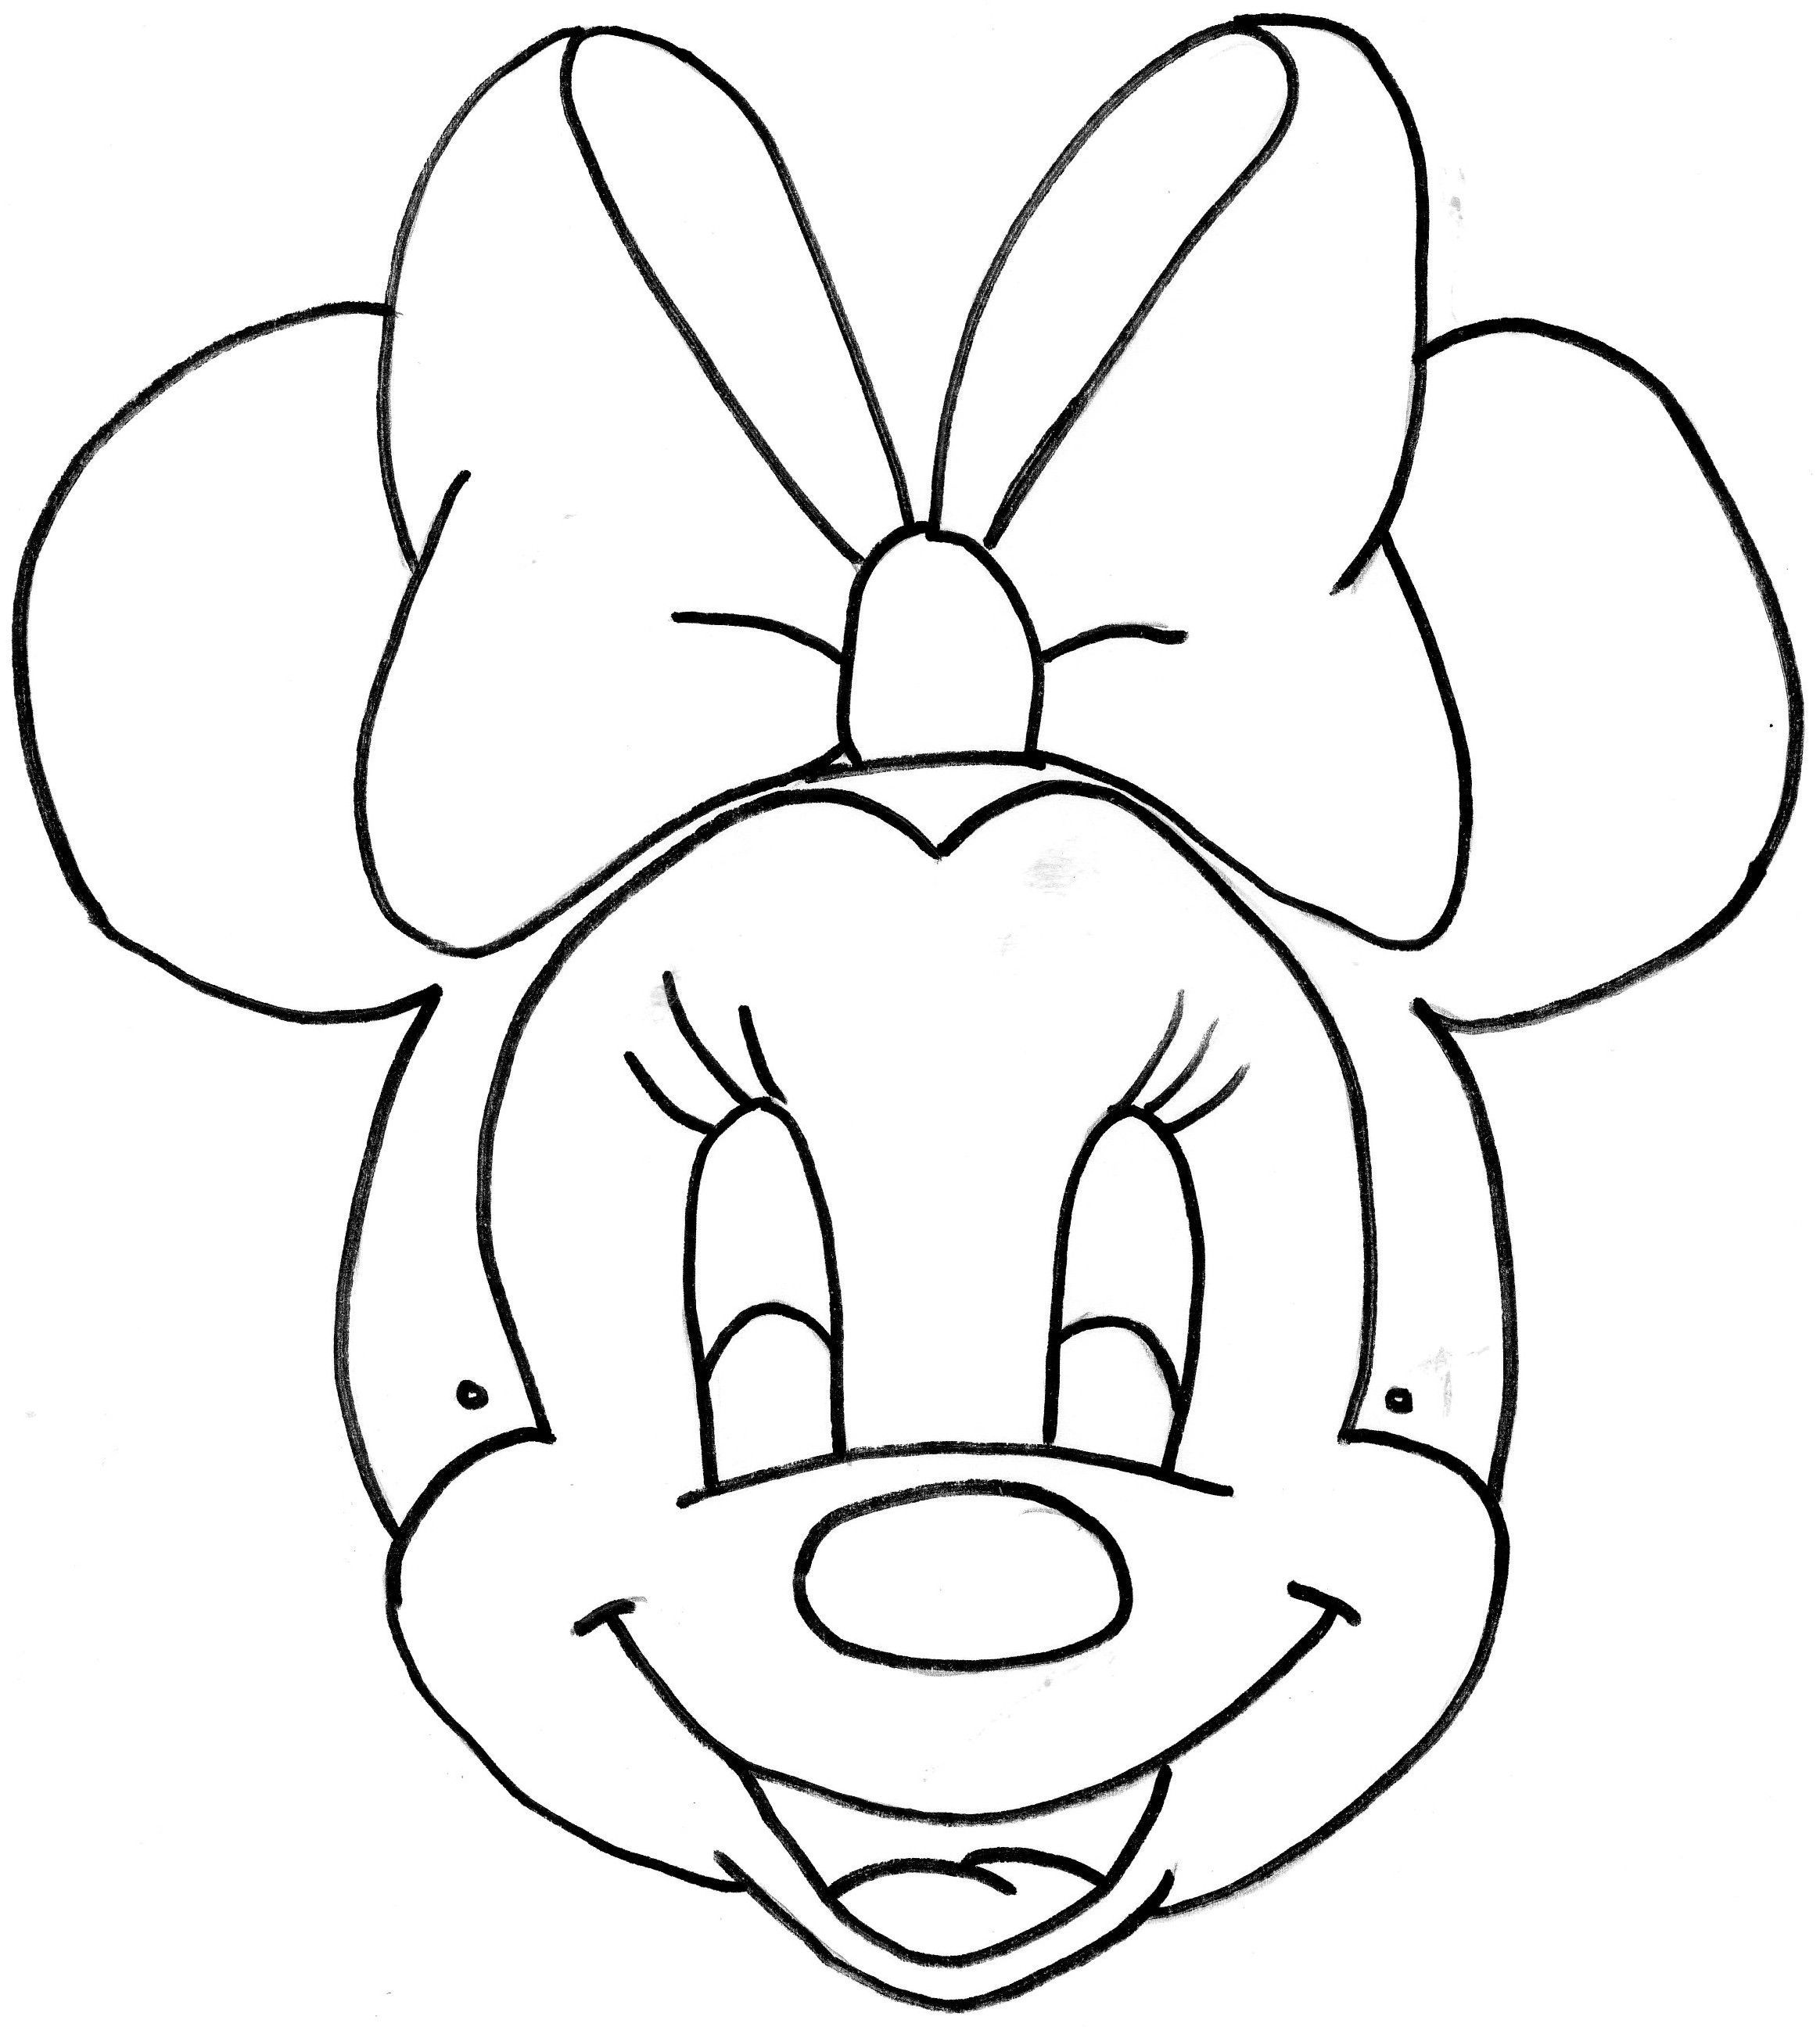 Unique image a colorier de minnie - Dessin de minie ...